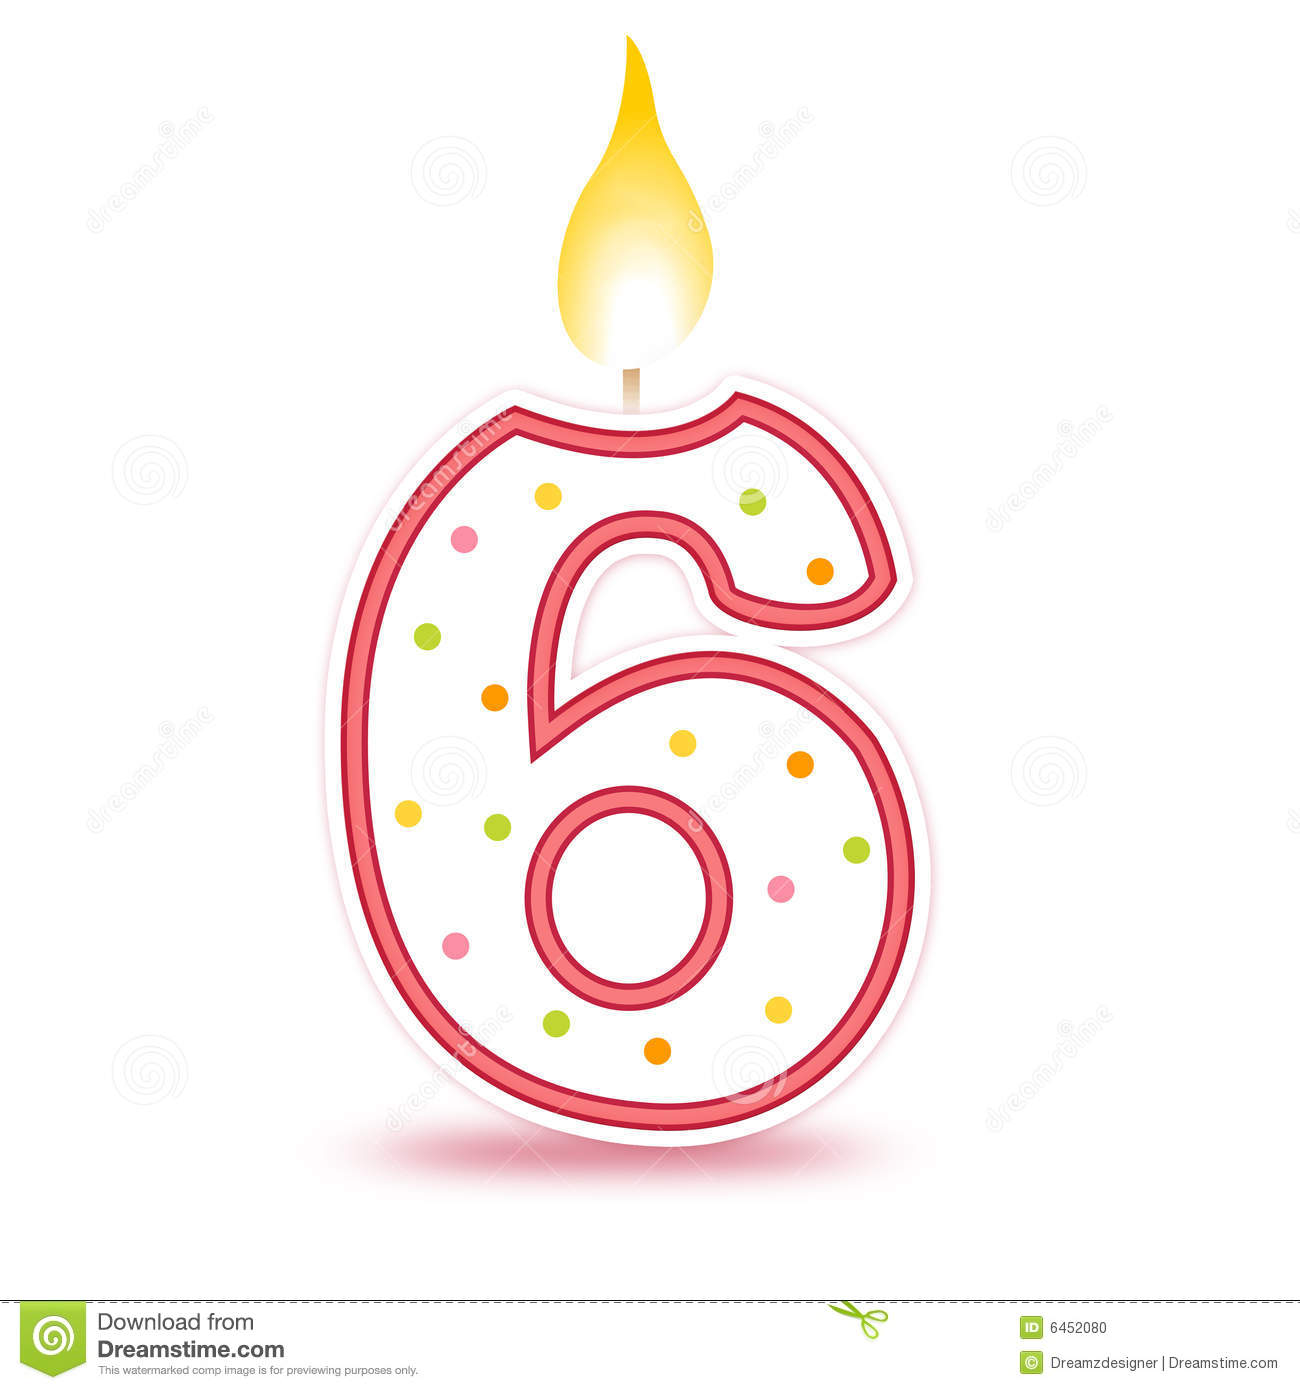 6th Candle Clipart.